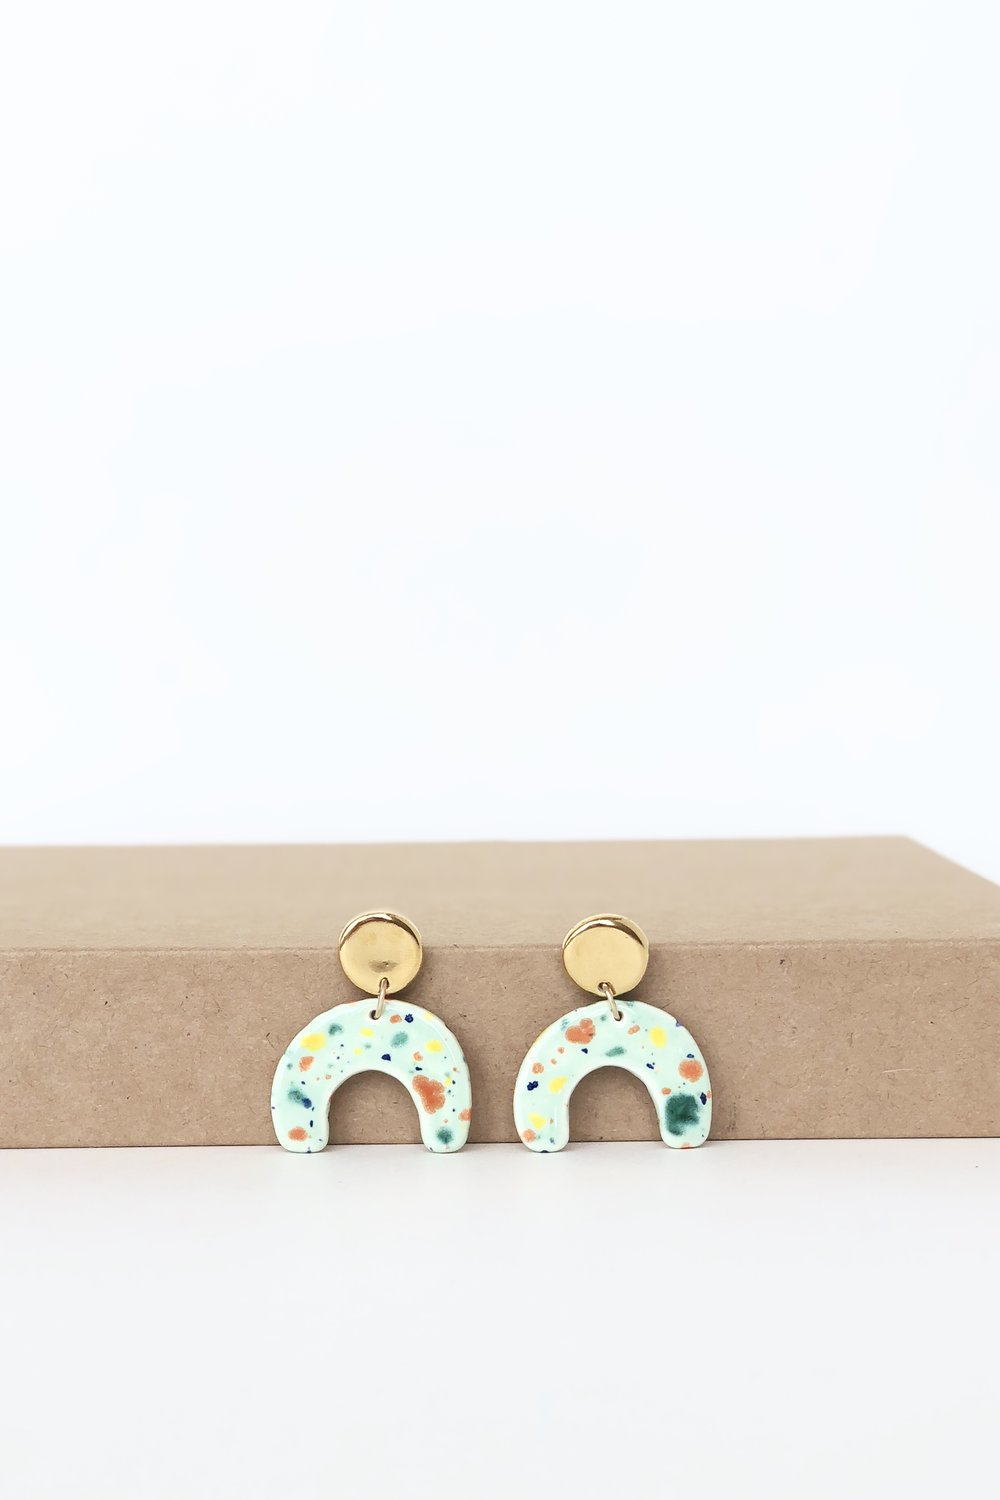 Confetti Statement Earrings by Quiet Clementine.